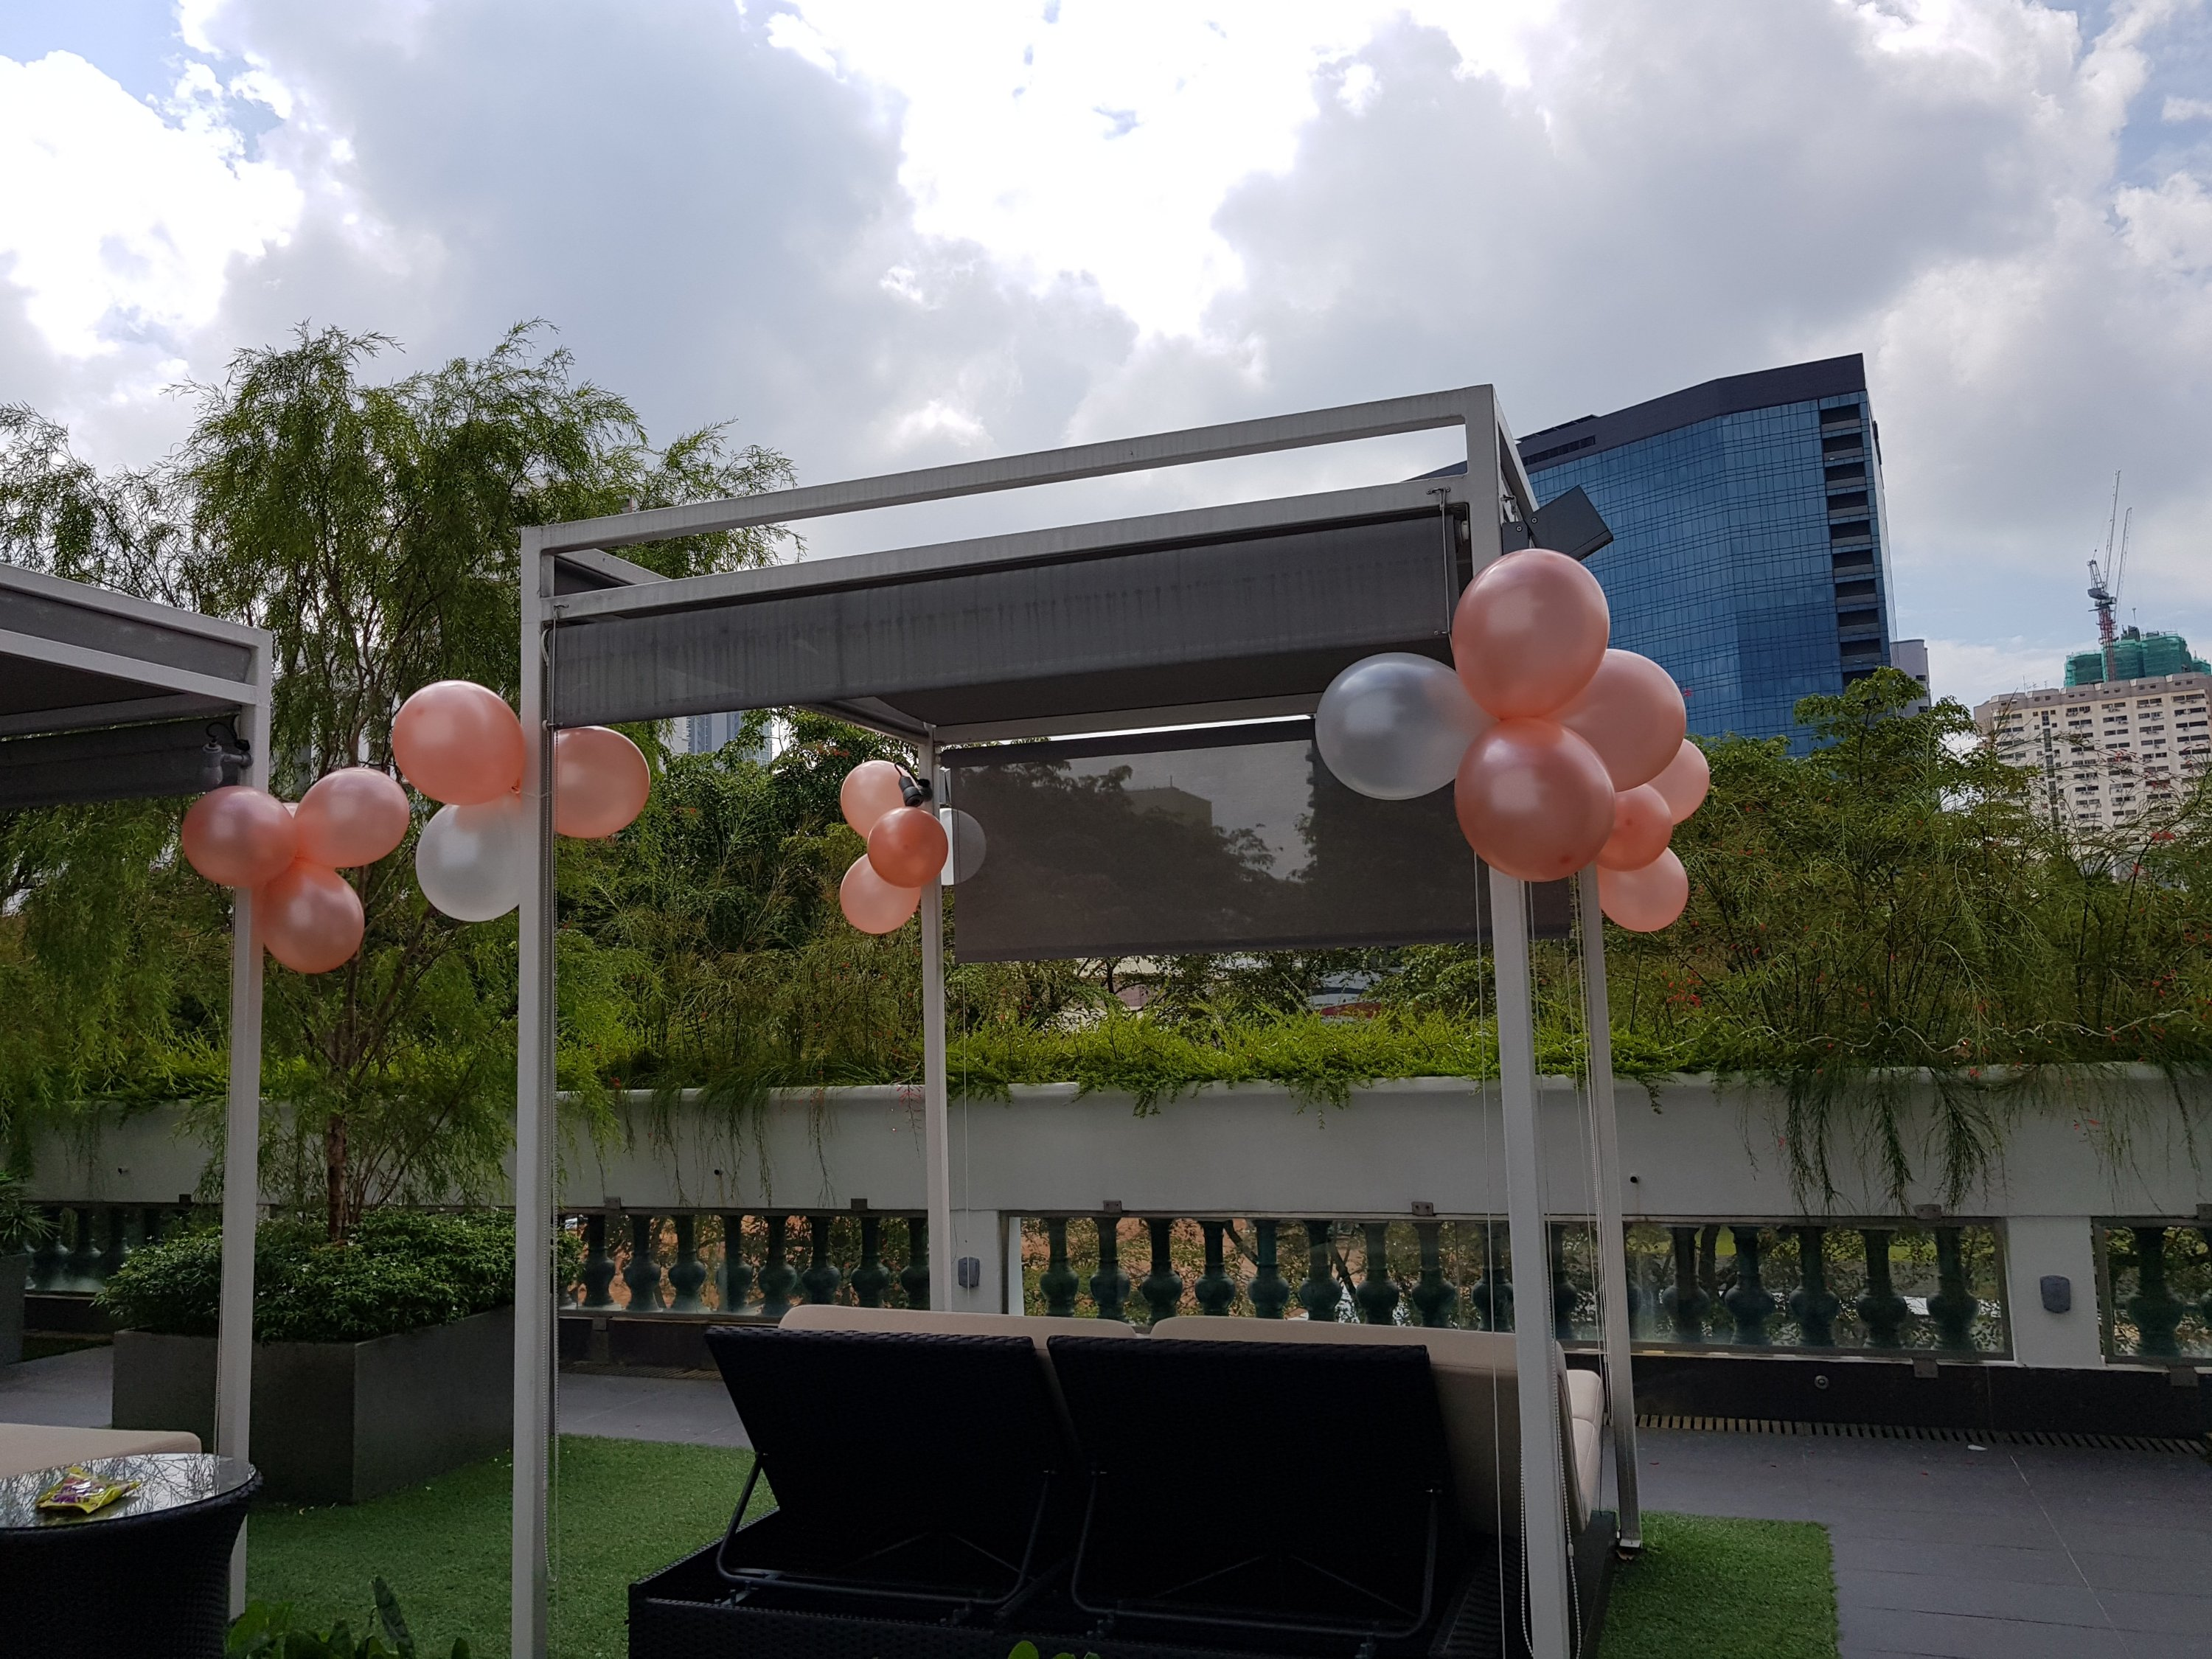 , Balloon decorations for Hotel!, Singapore Balloon Decoration Services - Balloon Workshop and Balloon Sculpting